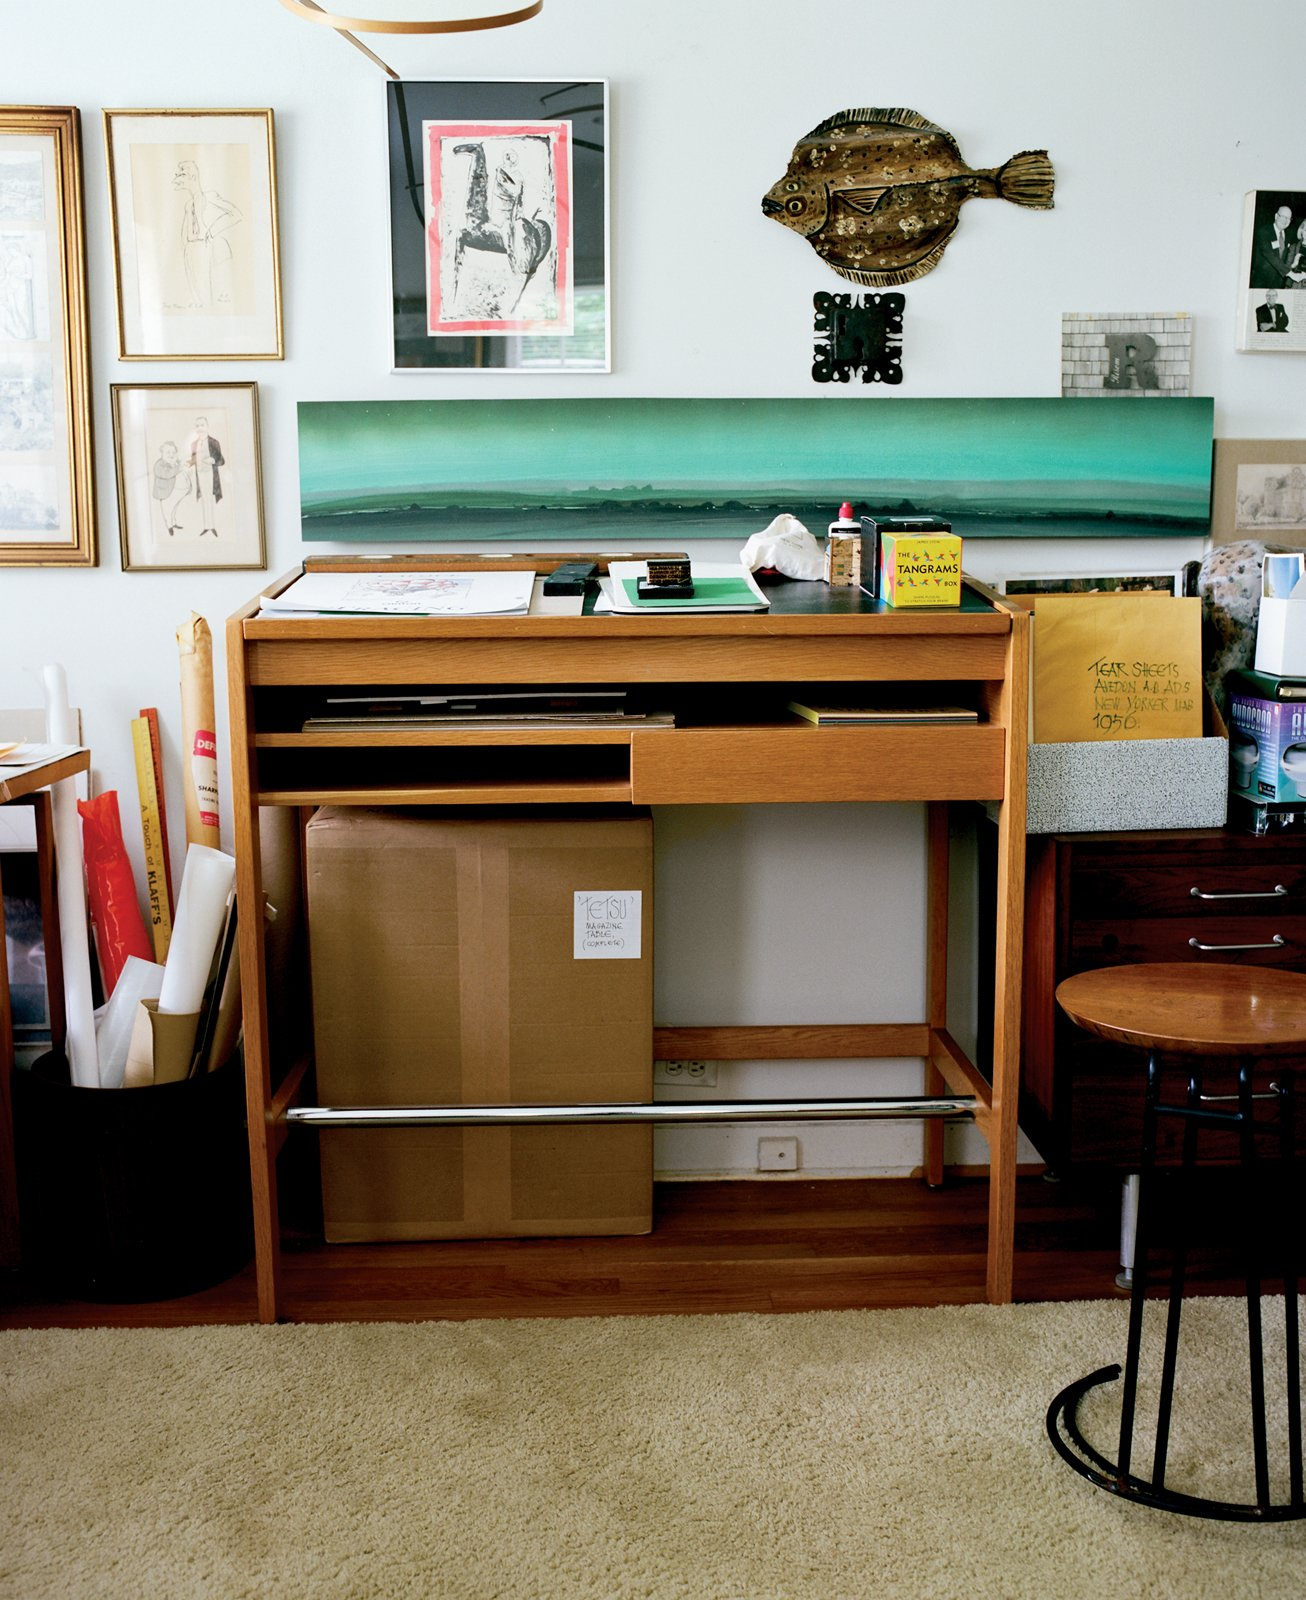 A workstation in Risom's office (bottom) shows evidence that the designer is still very much active; a pile of sketches sits in the basket to the left of the table, and ephemera from early Jens Risom Design marketing material decorate the wall.  Photo 3 of 6 in Fascinating Risom